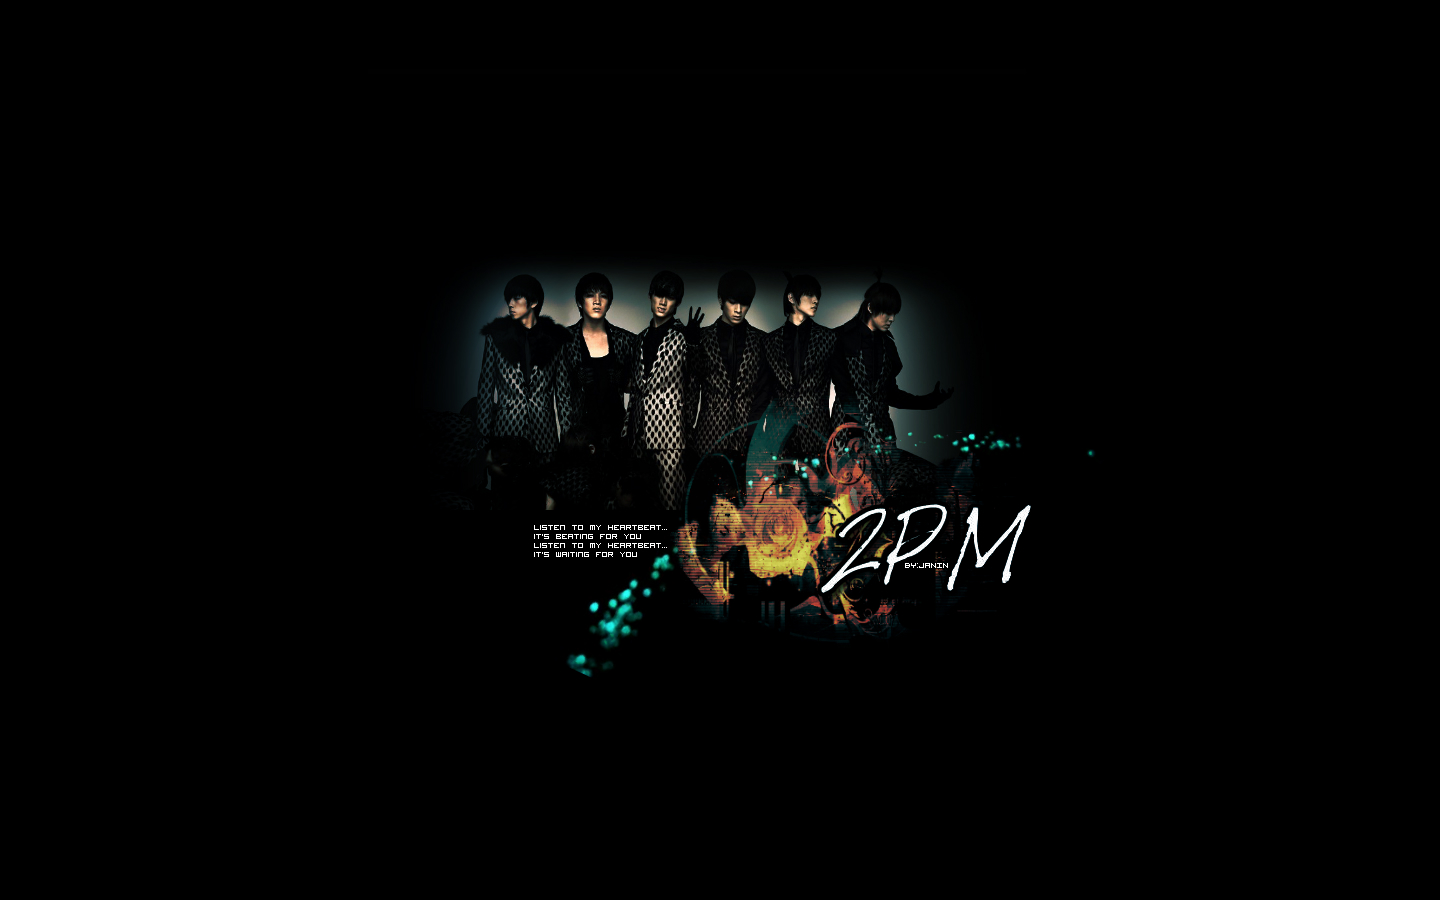 2PM_HEARTBEAT_WALLPAPER by janin2pm on deviantART